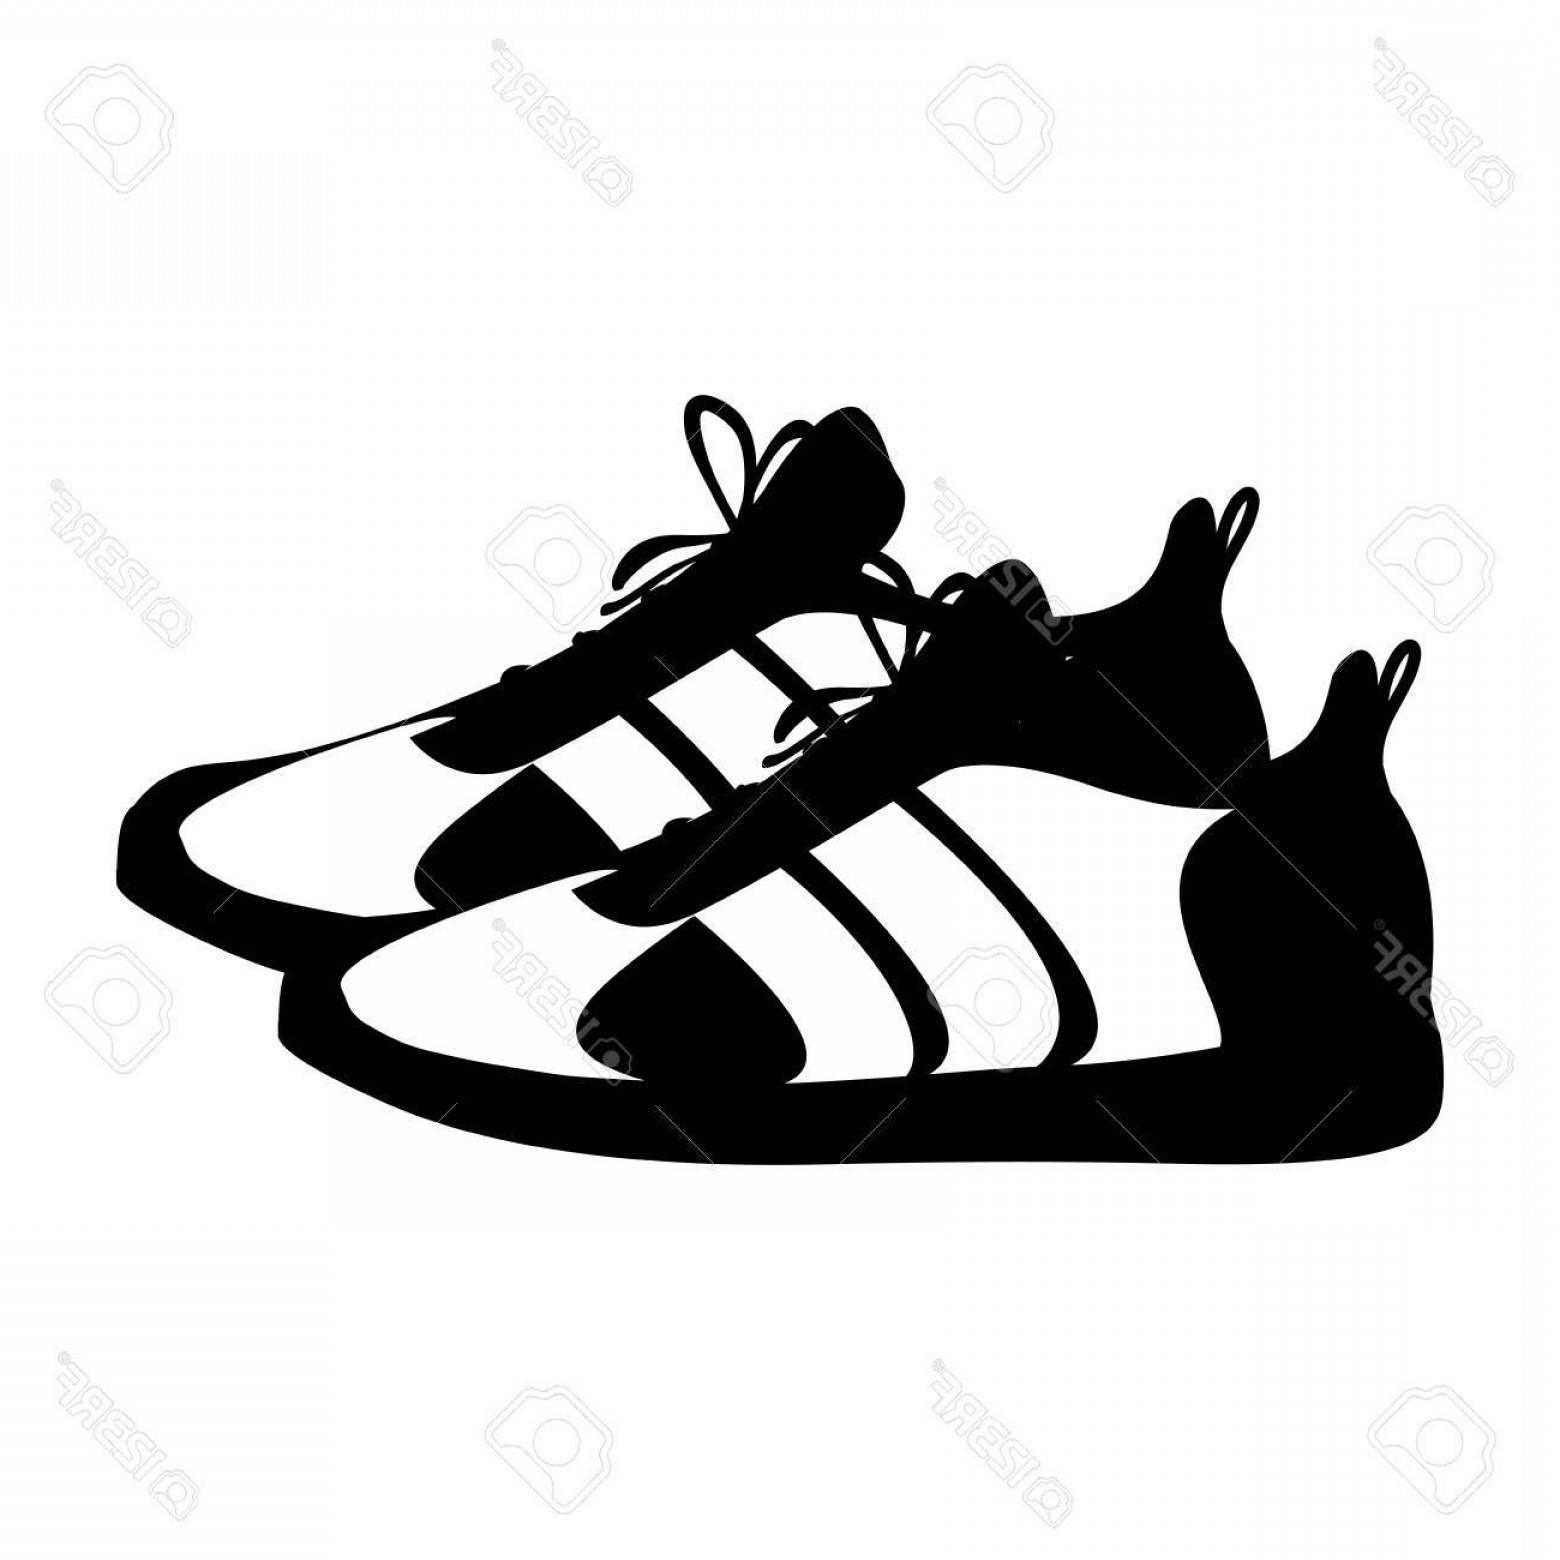 Sneaker Silhouette Vector: Photostock Vector Silhouette Pair Black Fitness Sneakers Design Icon Vector Illustration